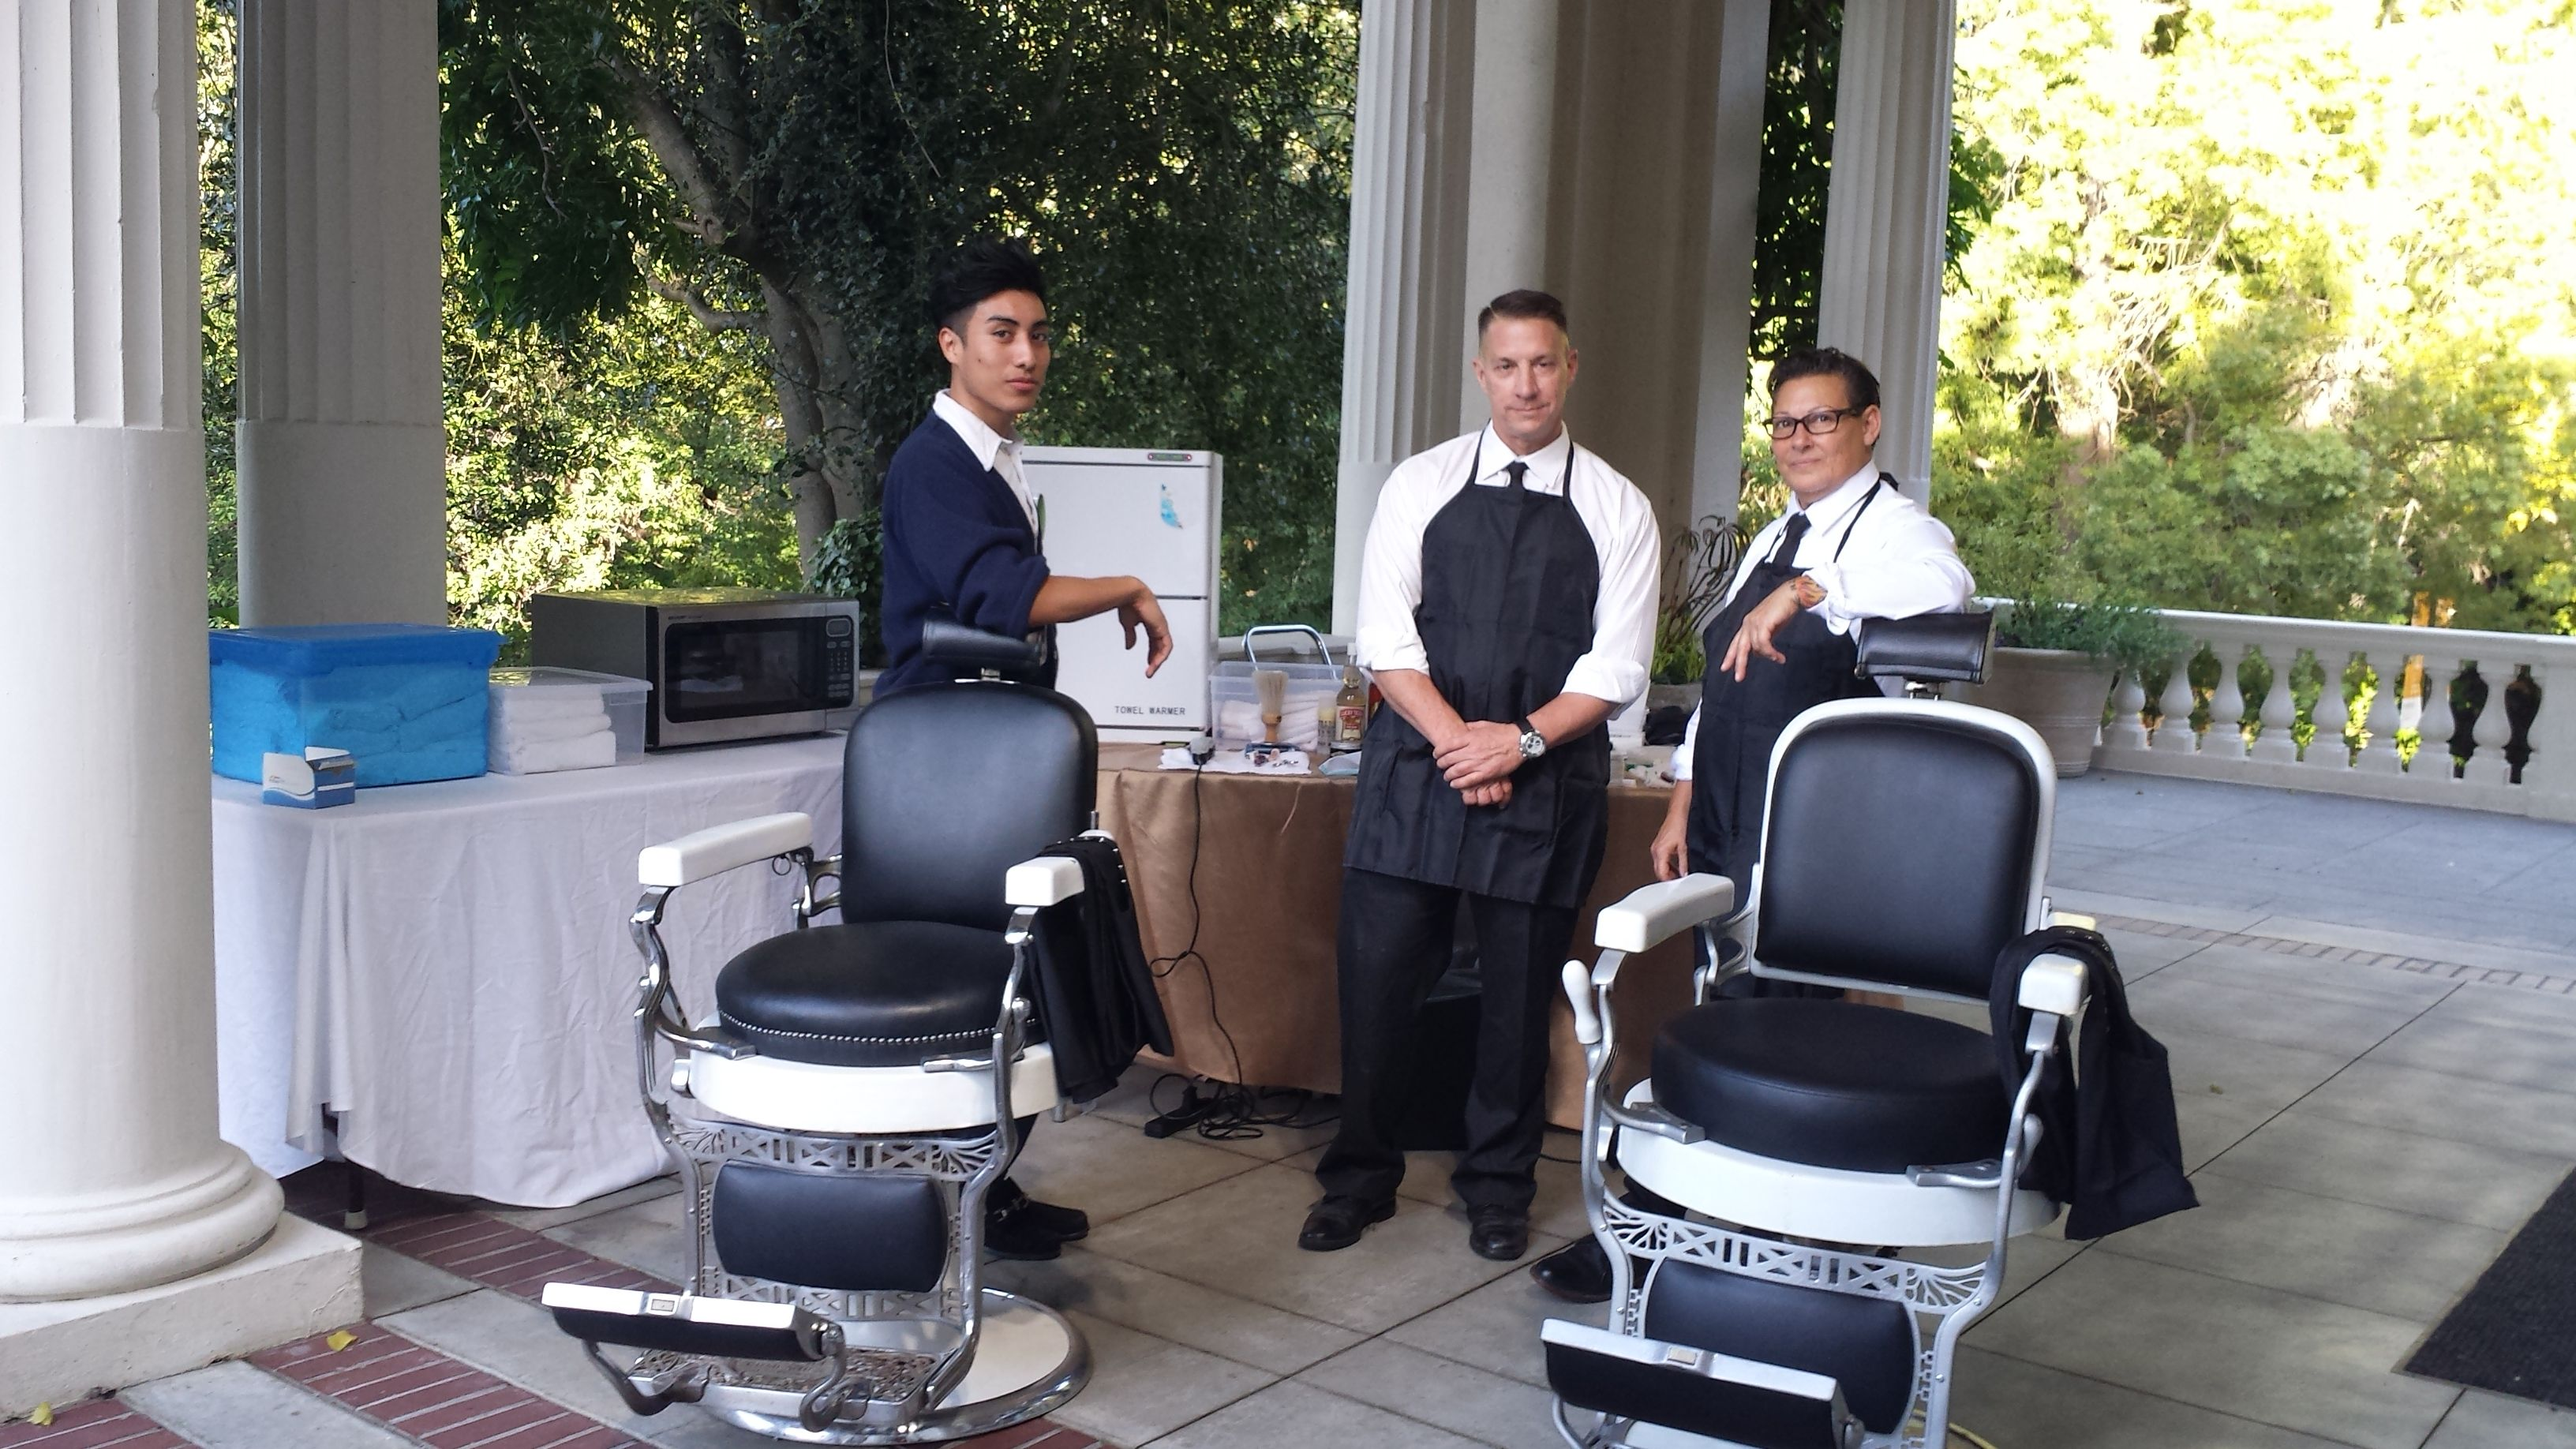 a shave bar on the Veranda to pamper executives